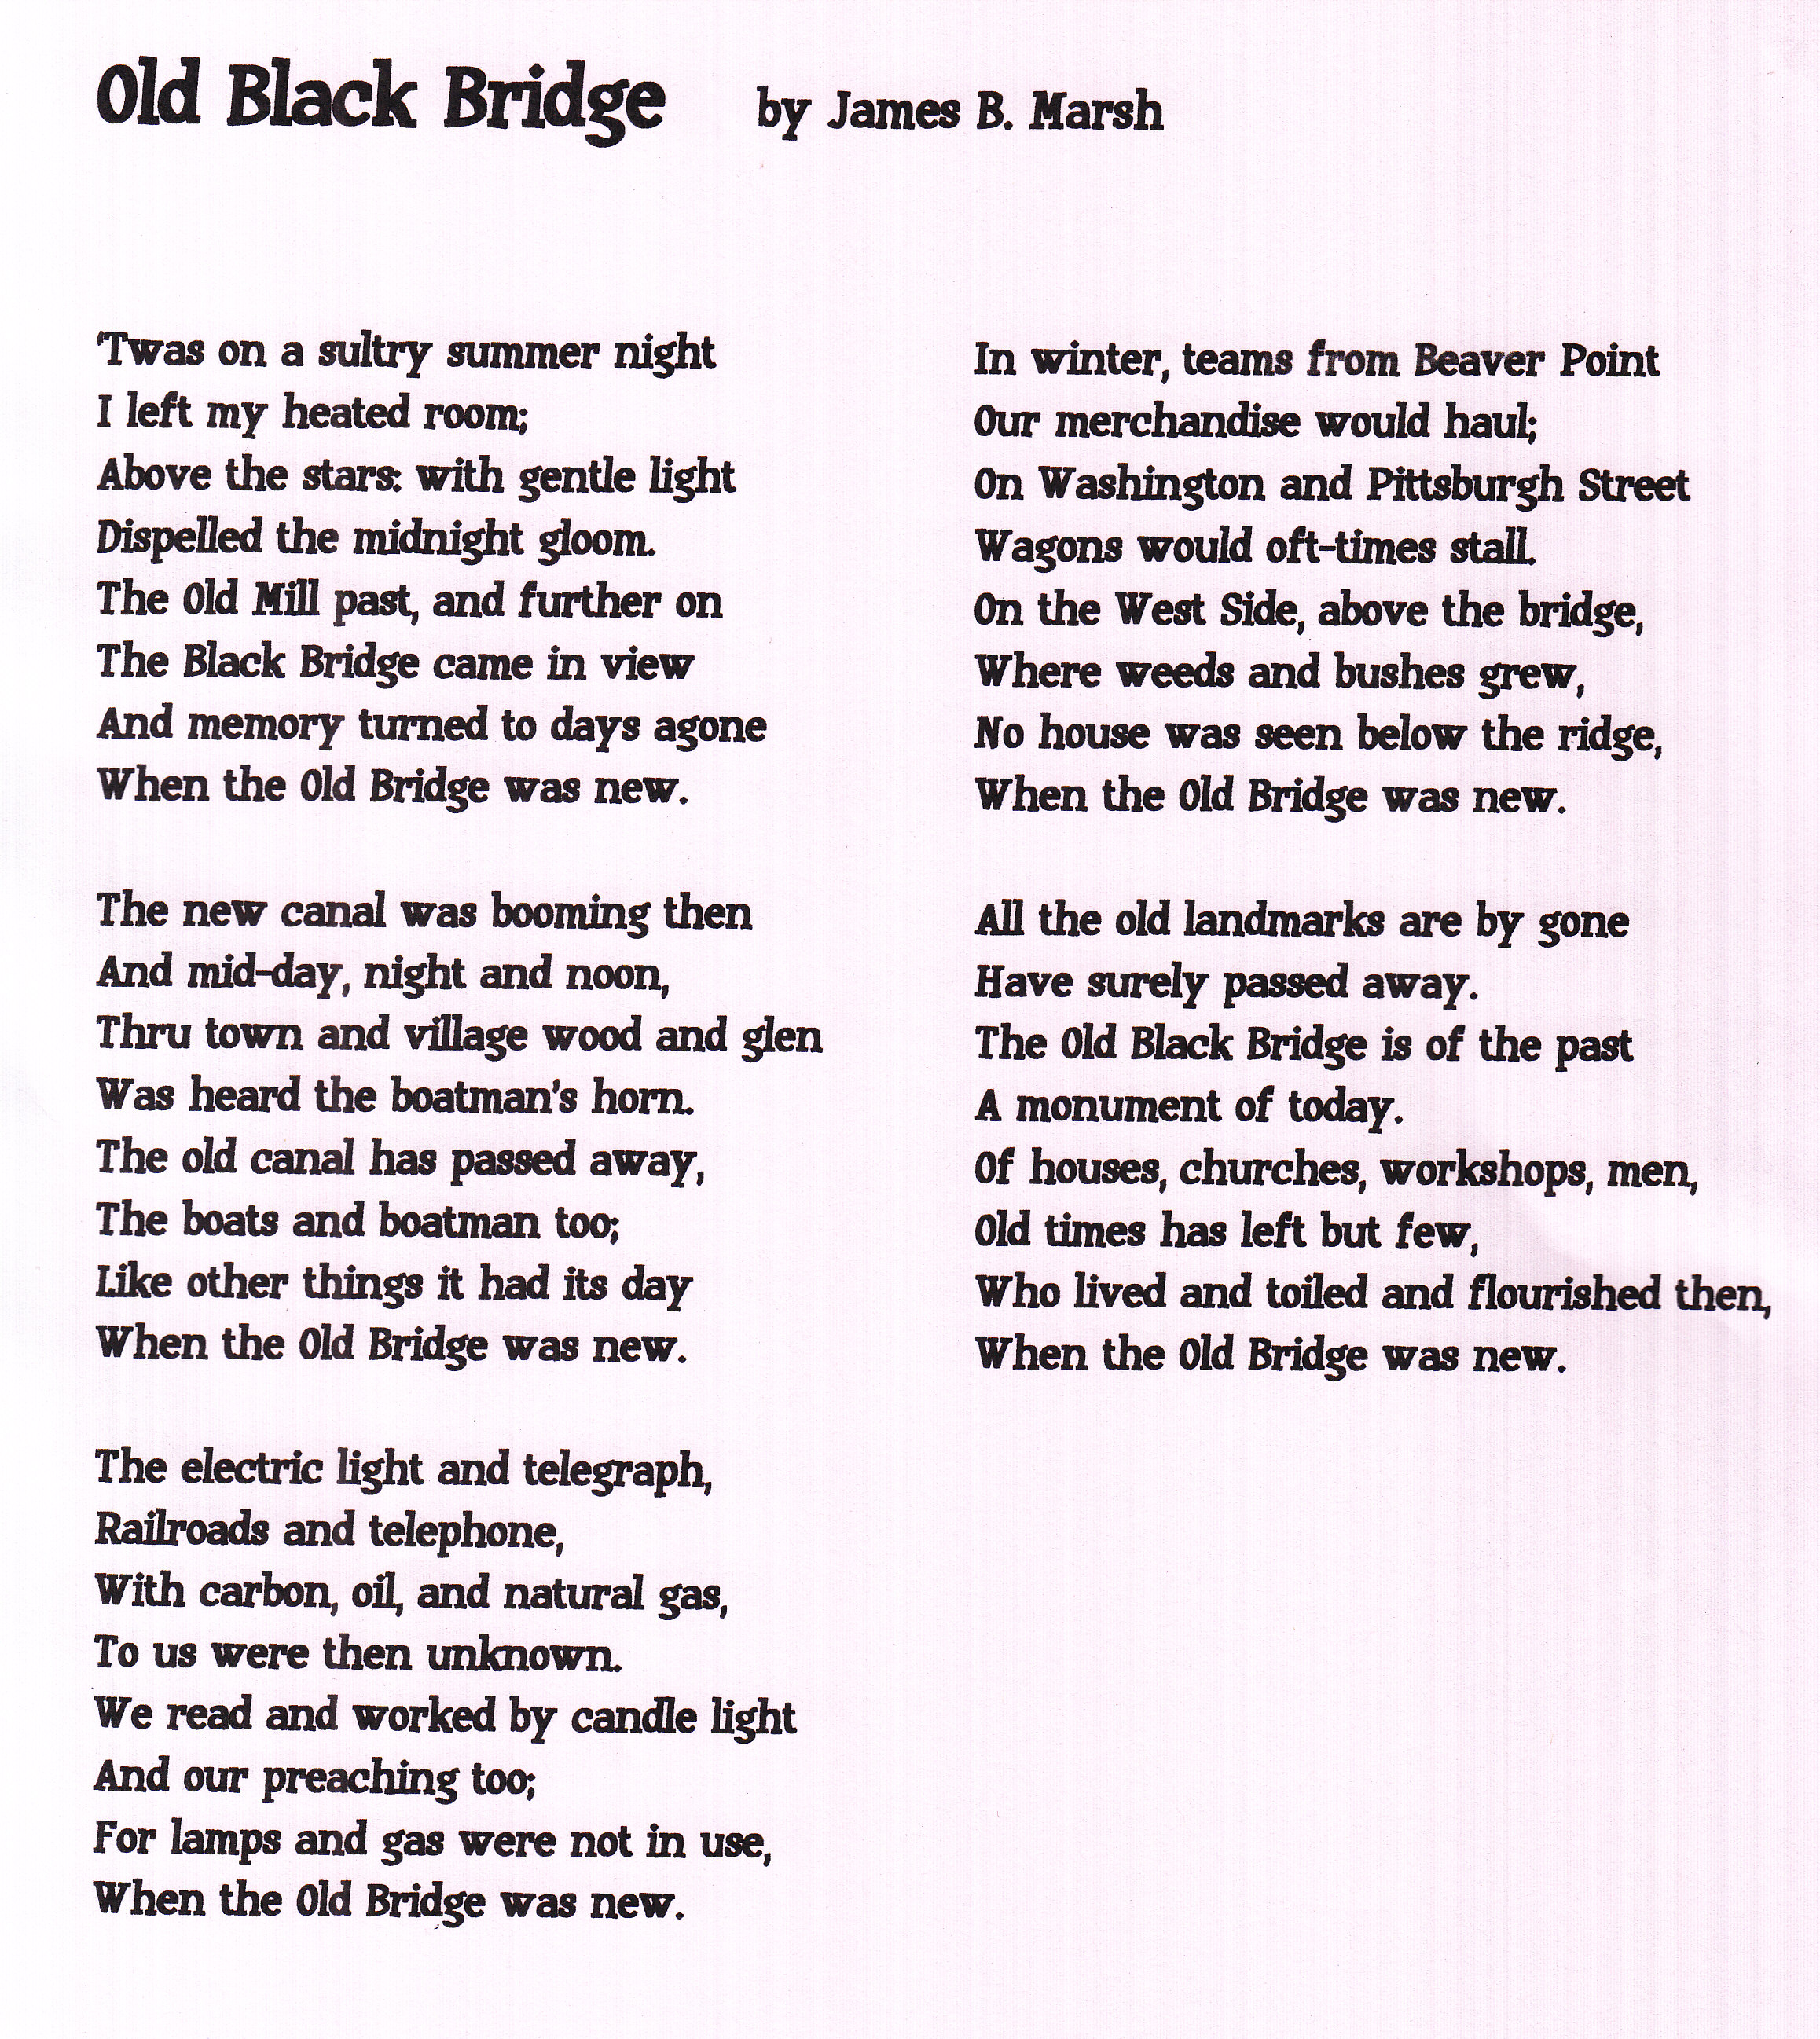 Lawrence County Memoirs: Old Black Bridge - Bridge Poem